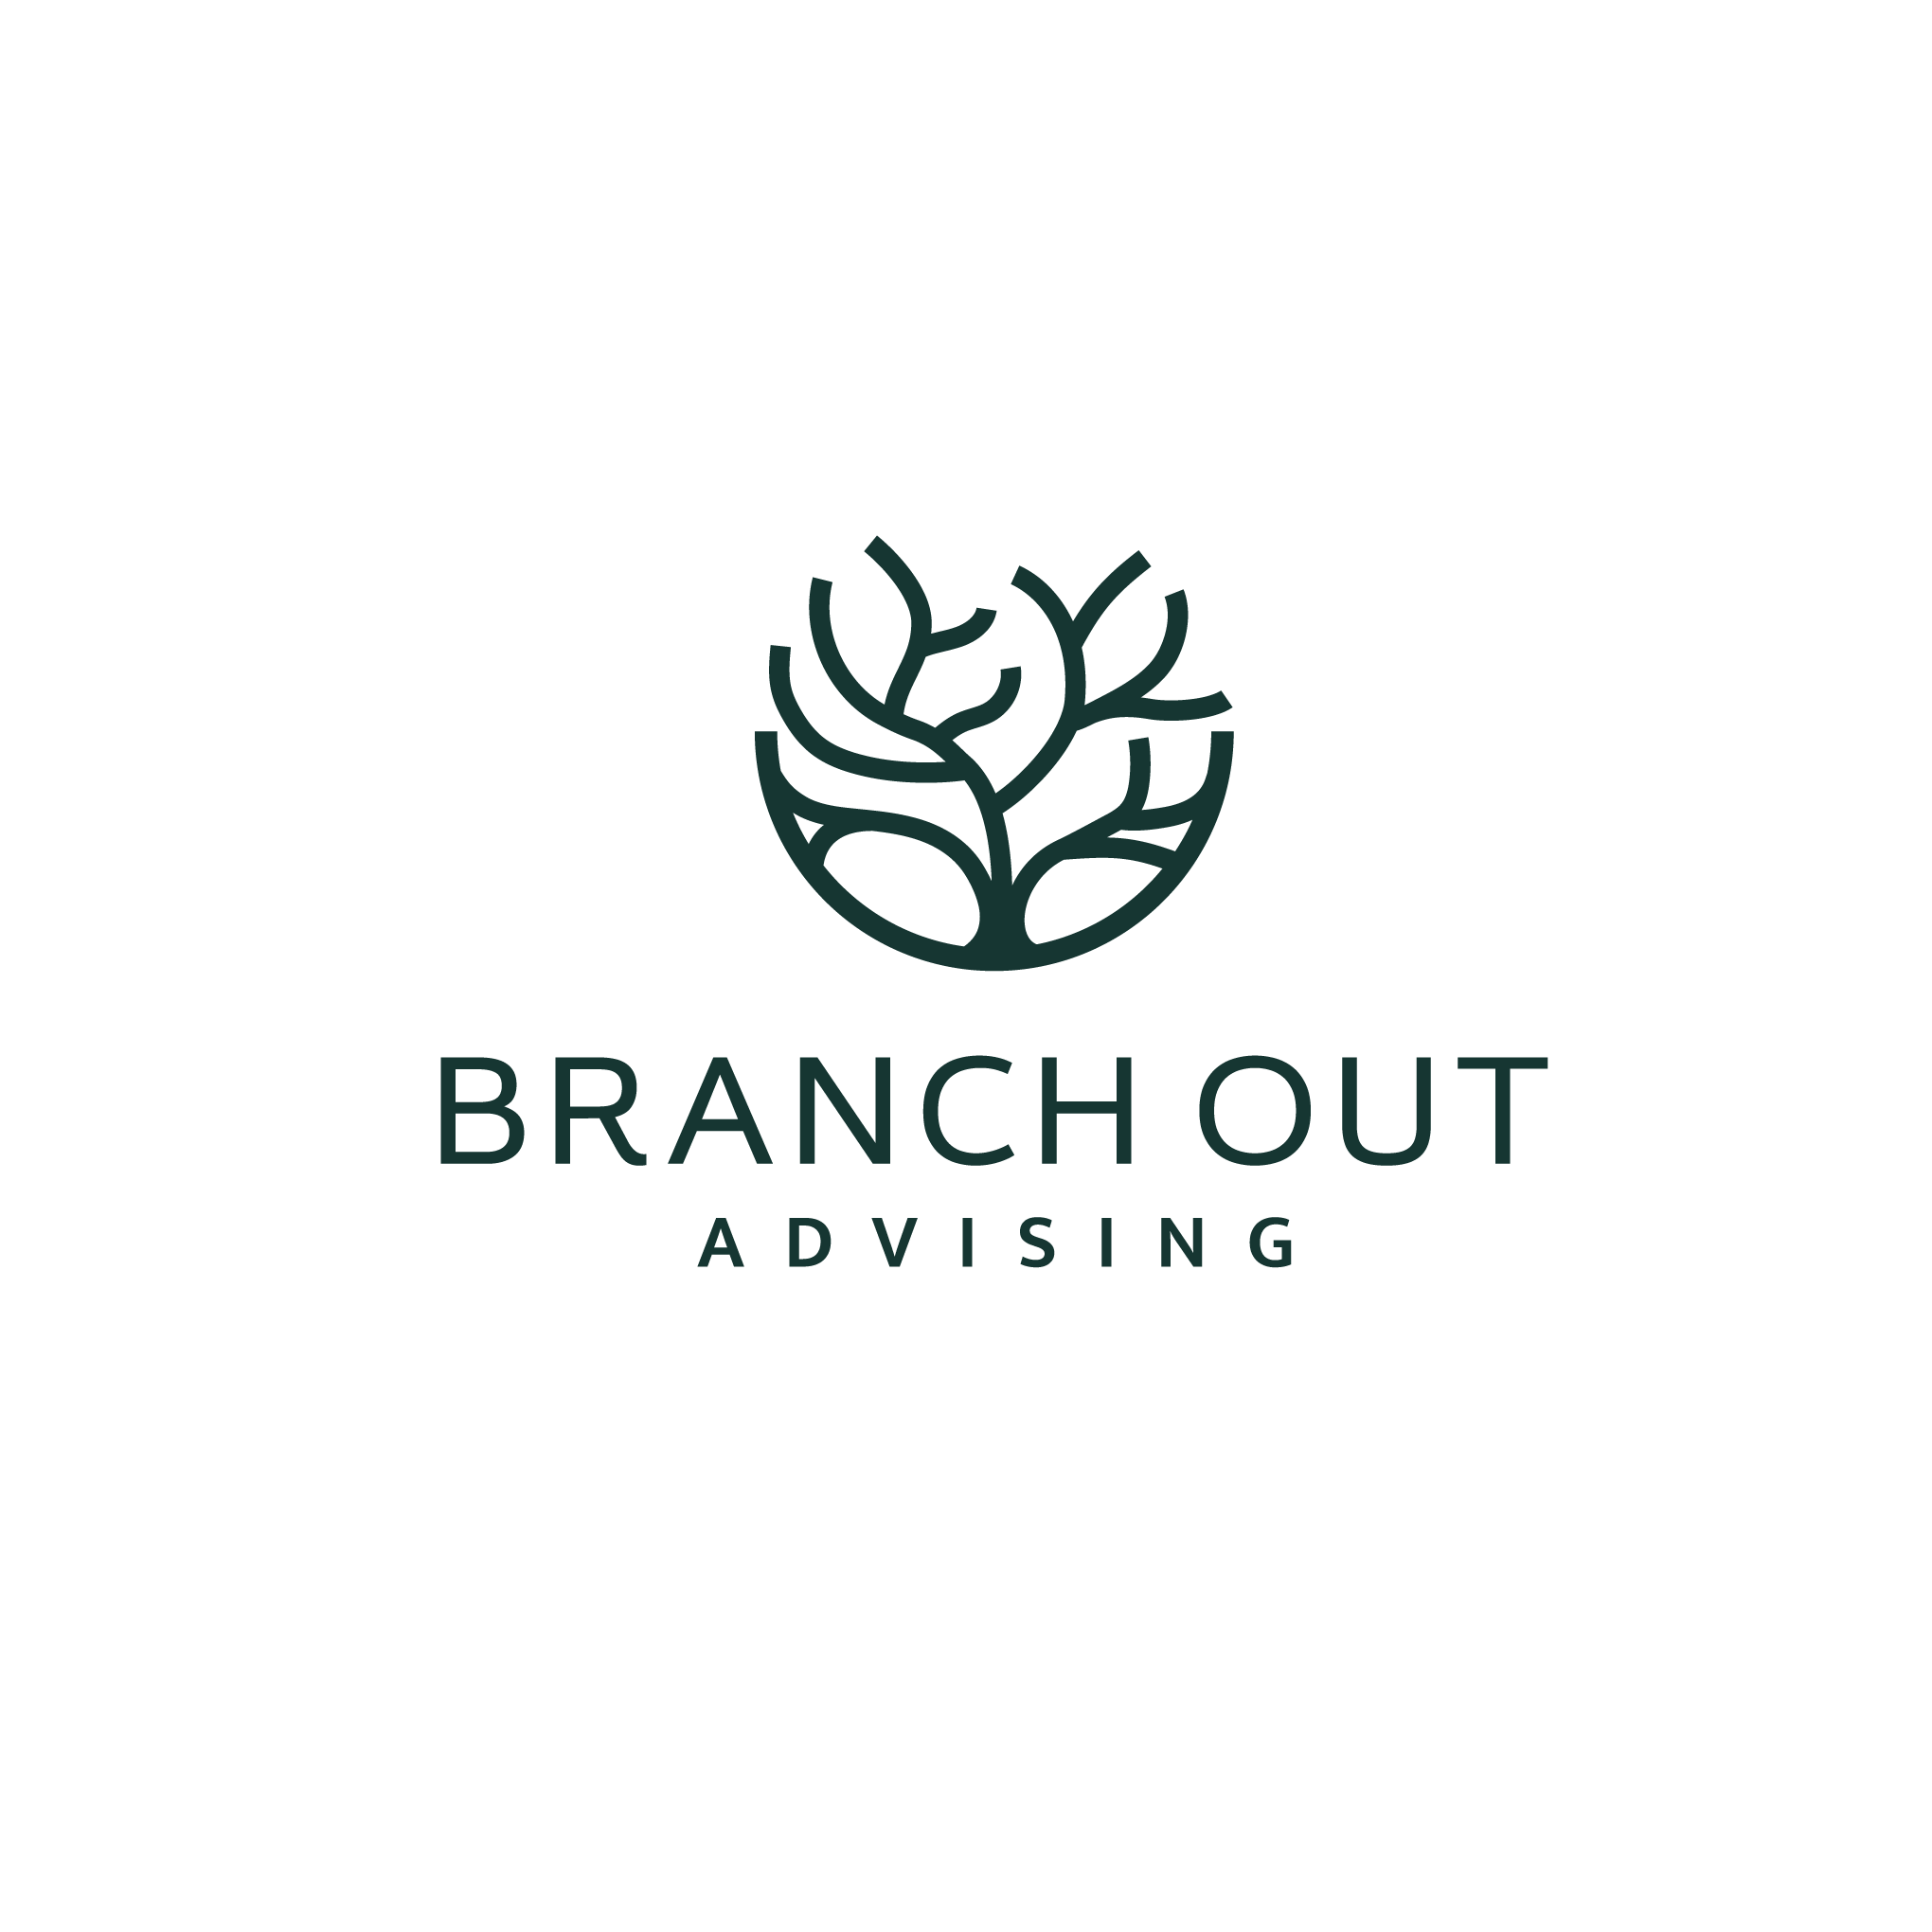 Hip, professional logo for college and career search business